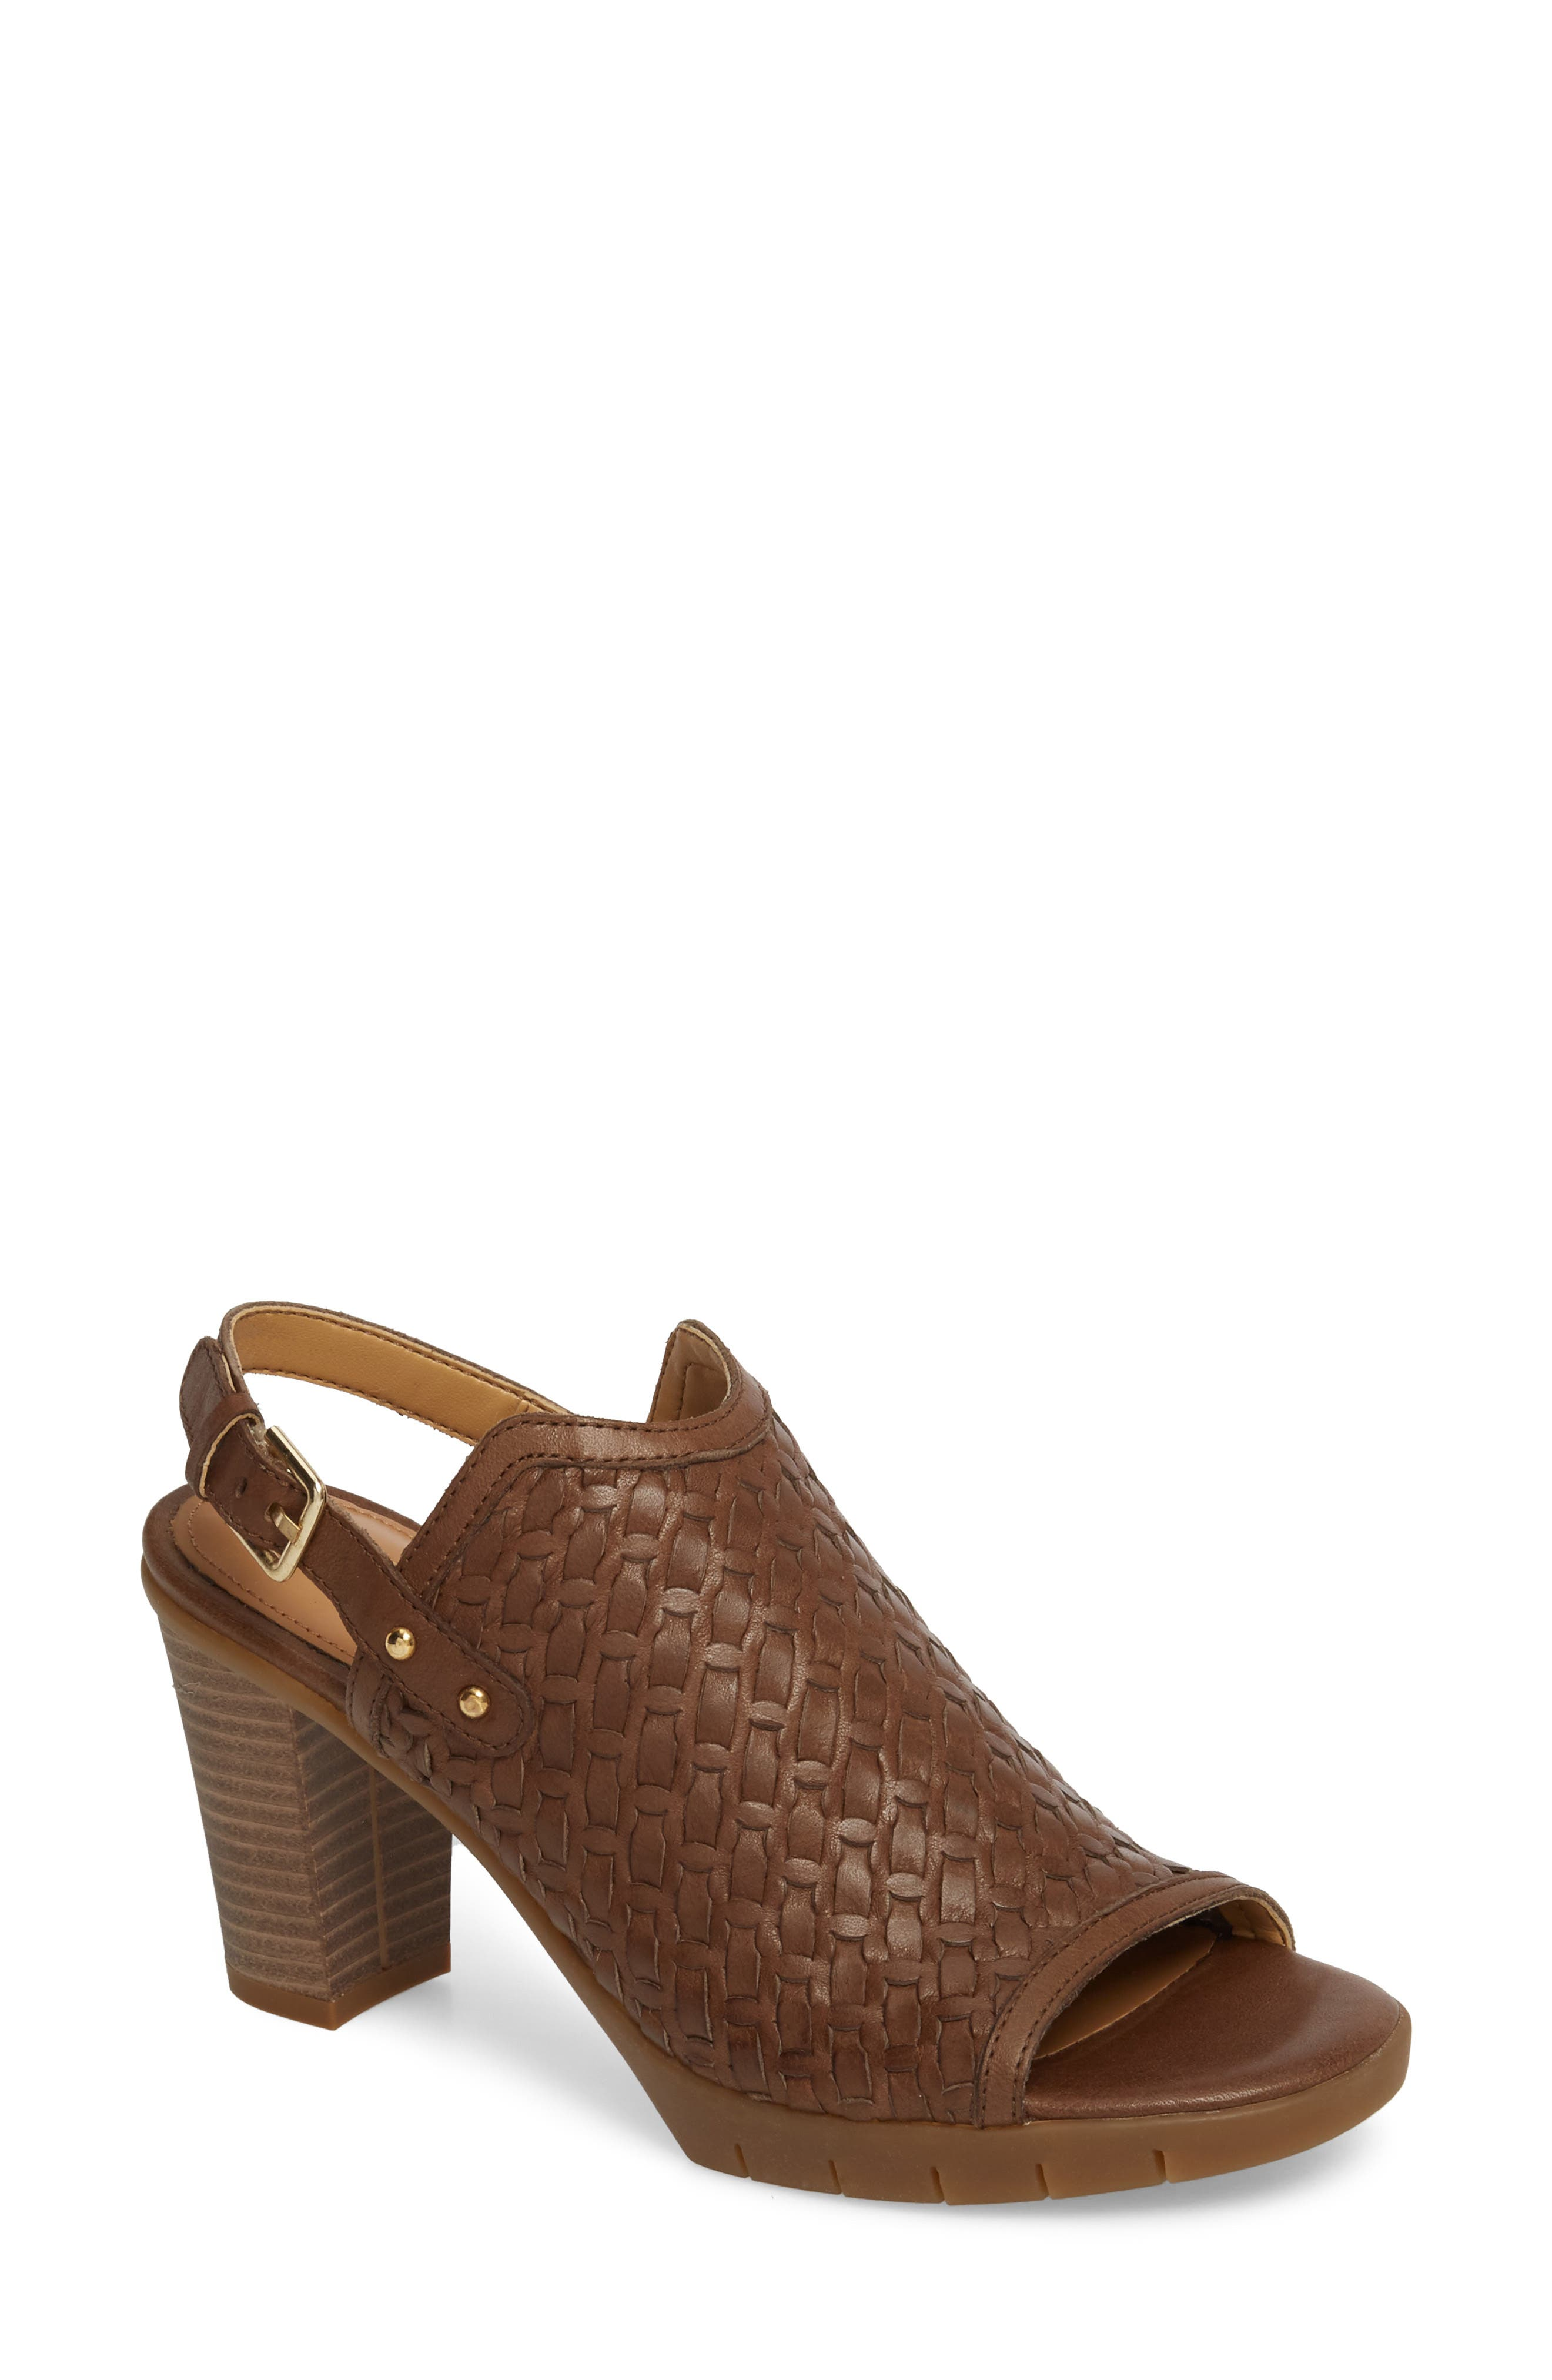 Weave Me Be Slingback Sandal,                         Main,                         color, Chocolate Leather